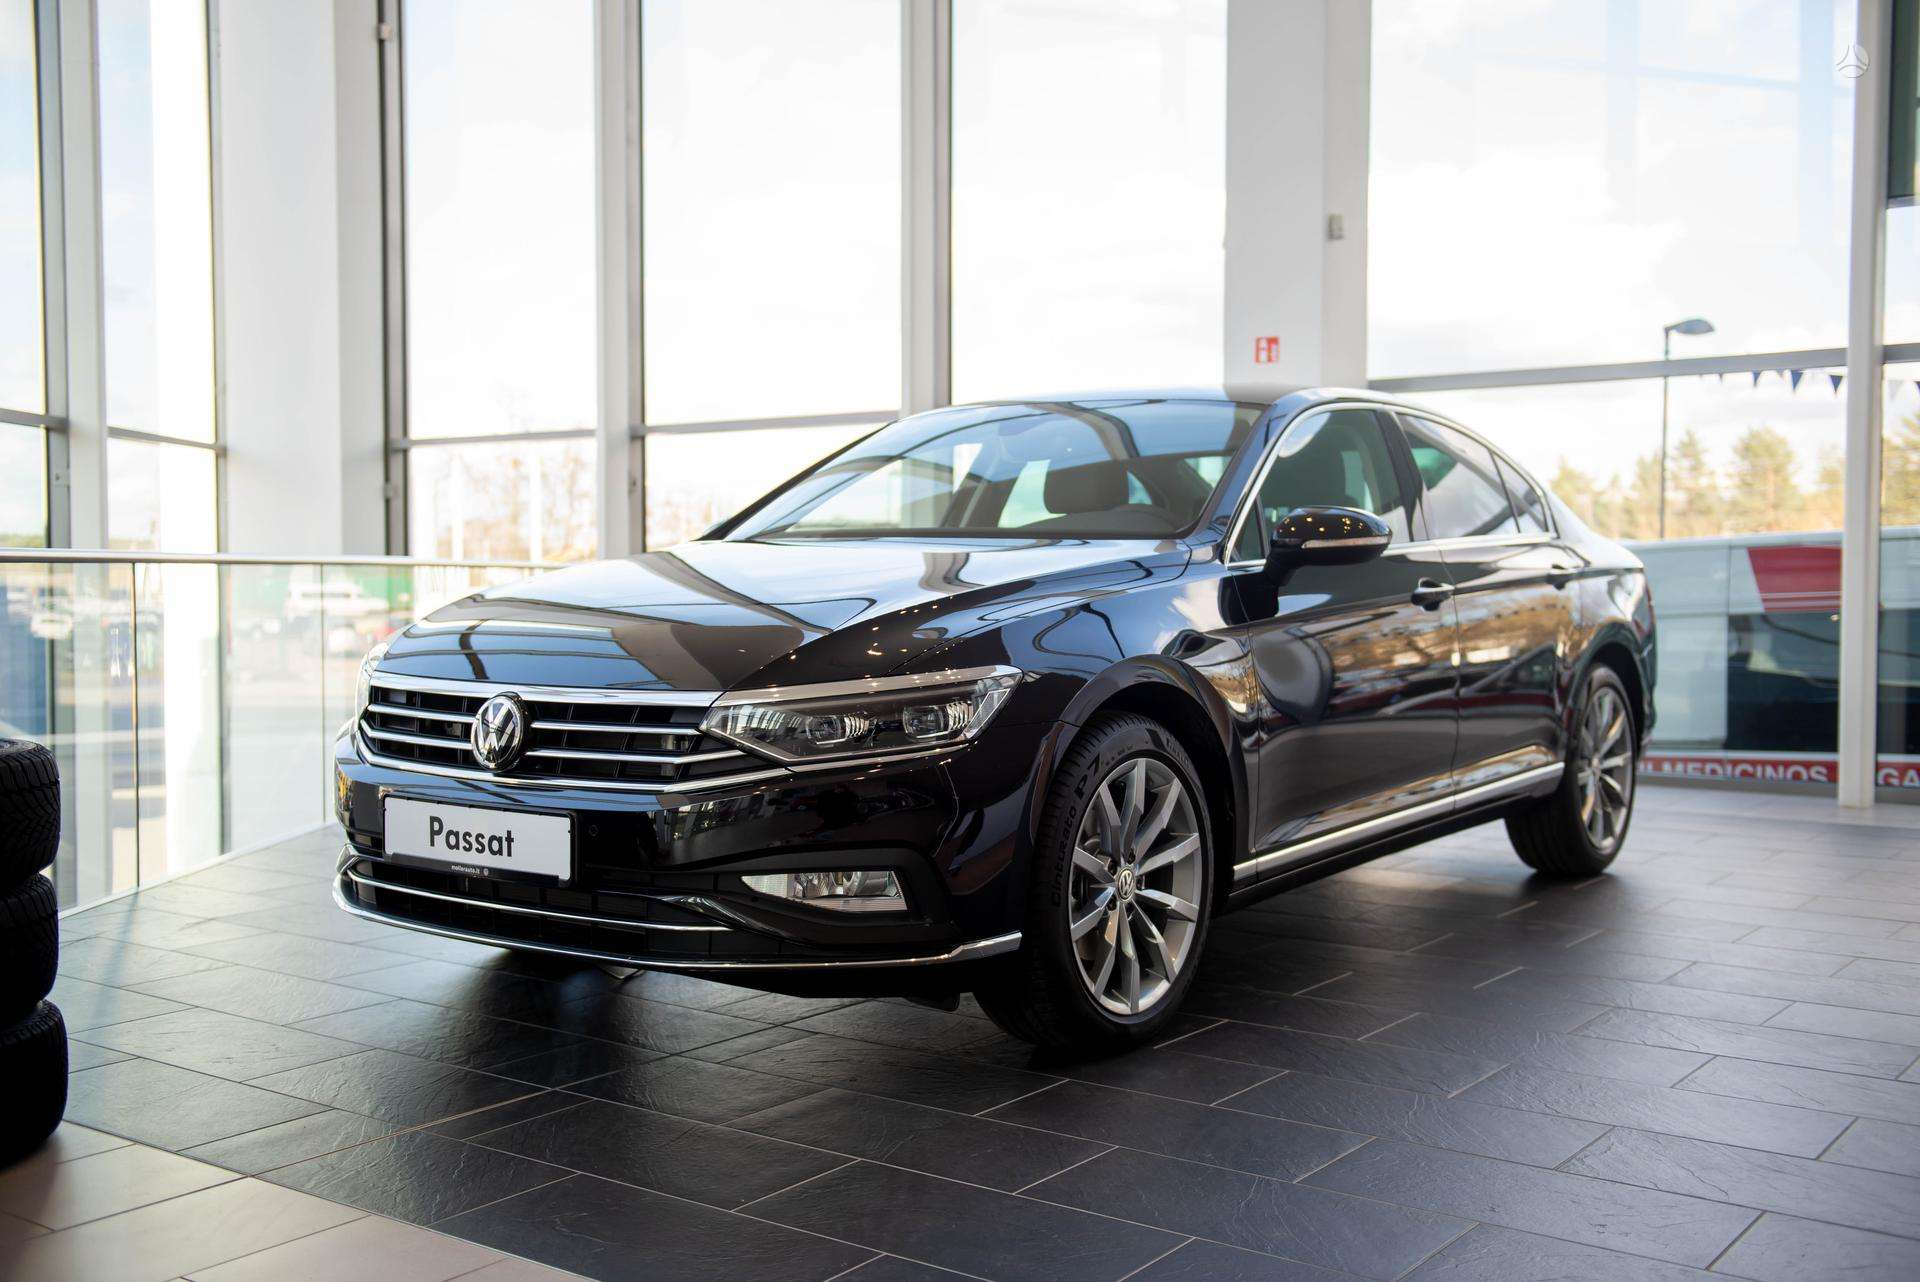 Volkswagen Passat Executive 2.0 TSI 190AG (Facelift)